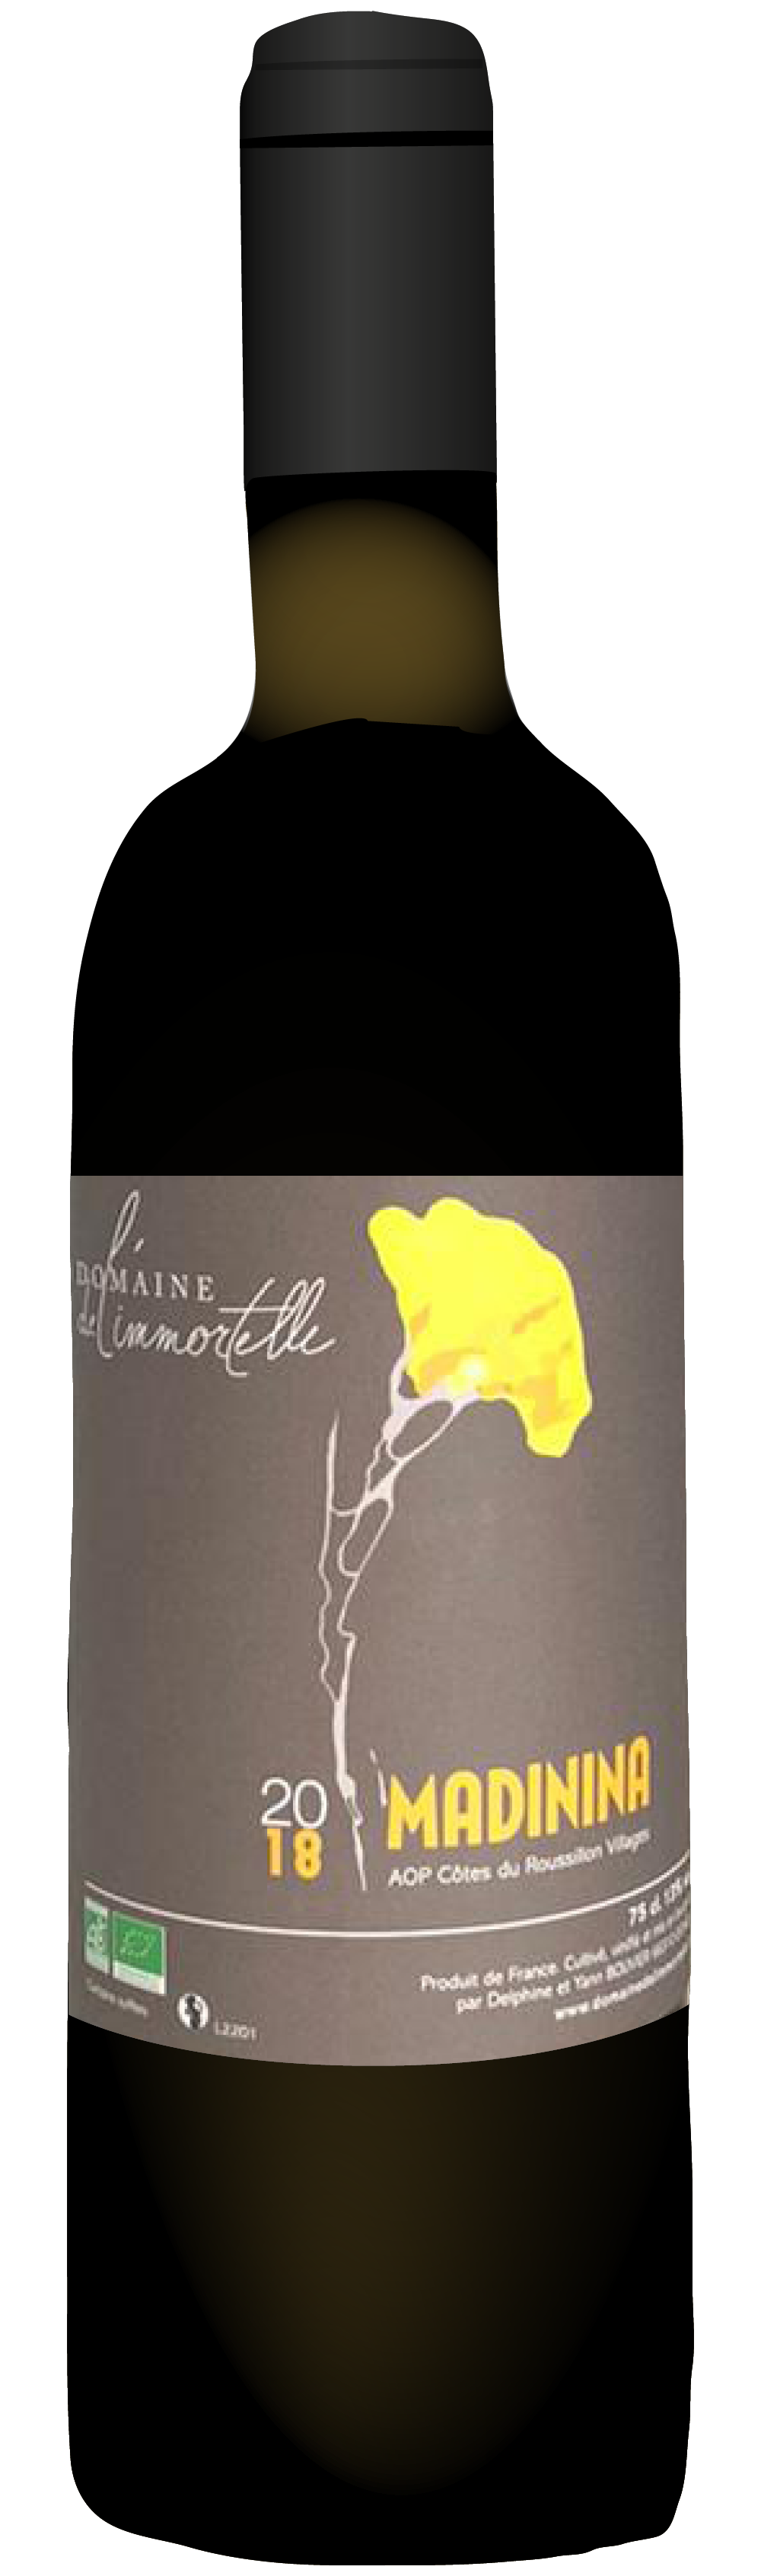 the natural wine company club march 2021 france domaine de limmortelle madinina